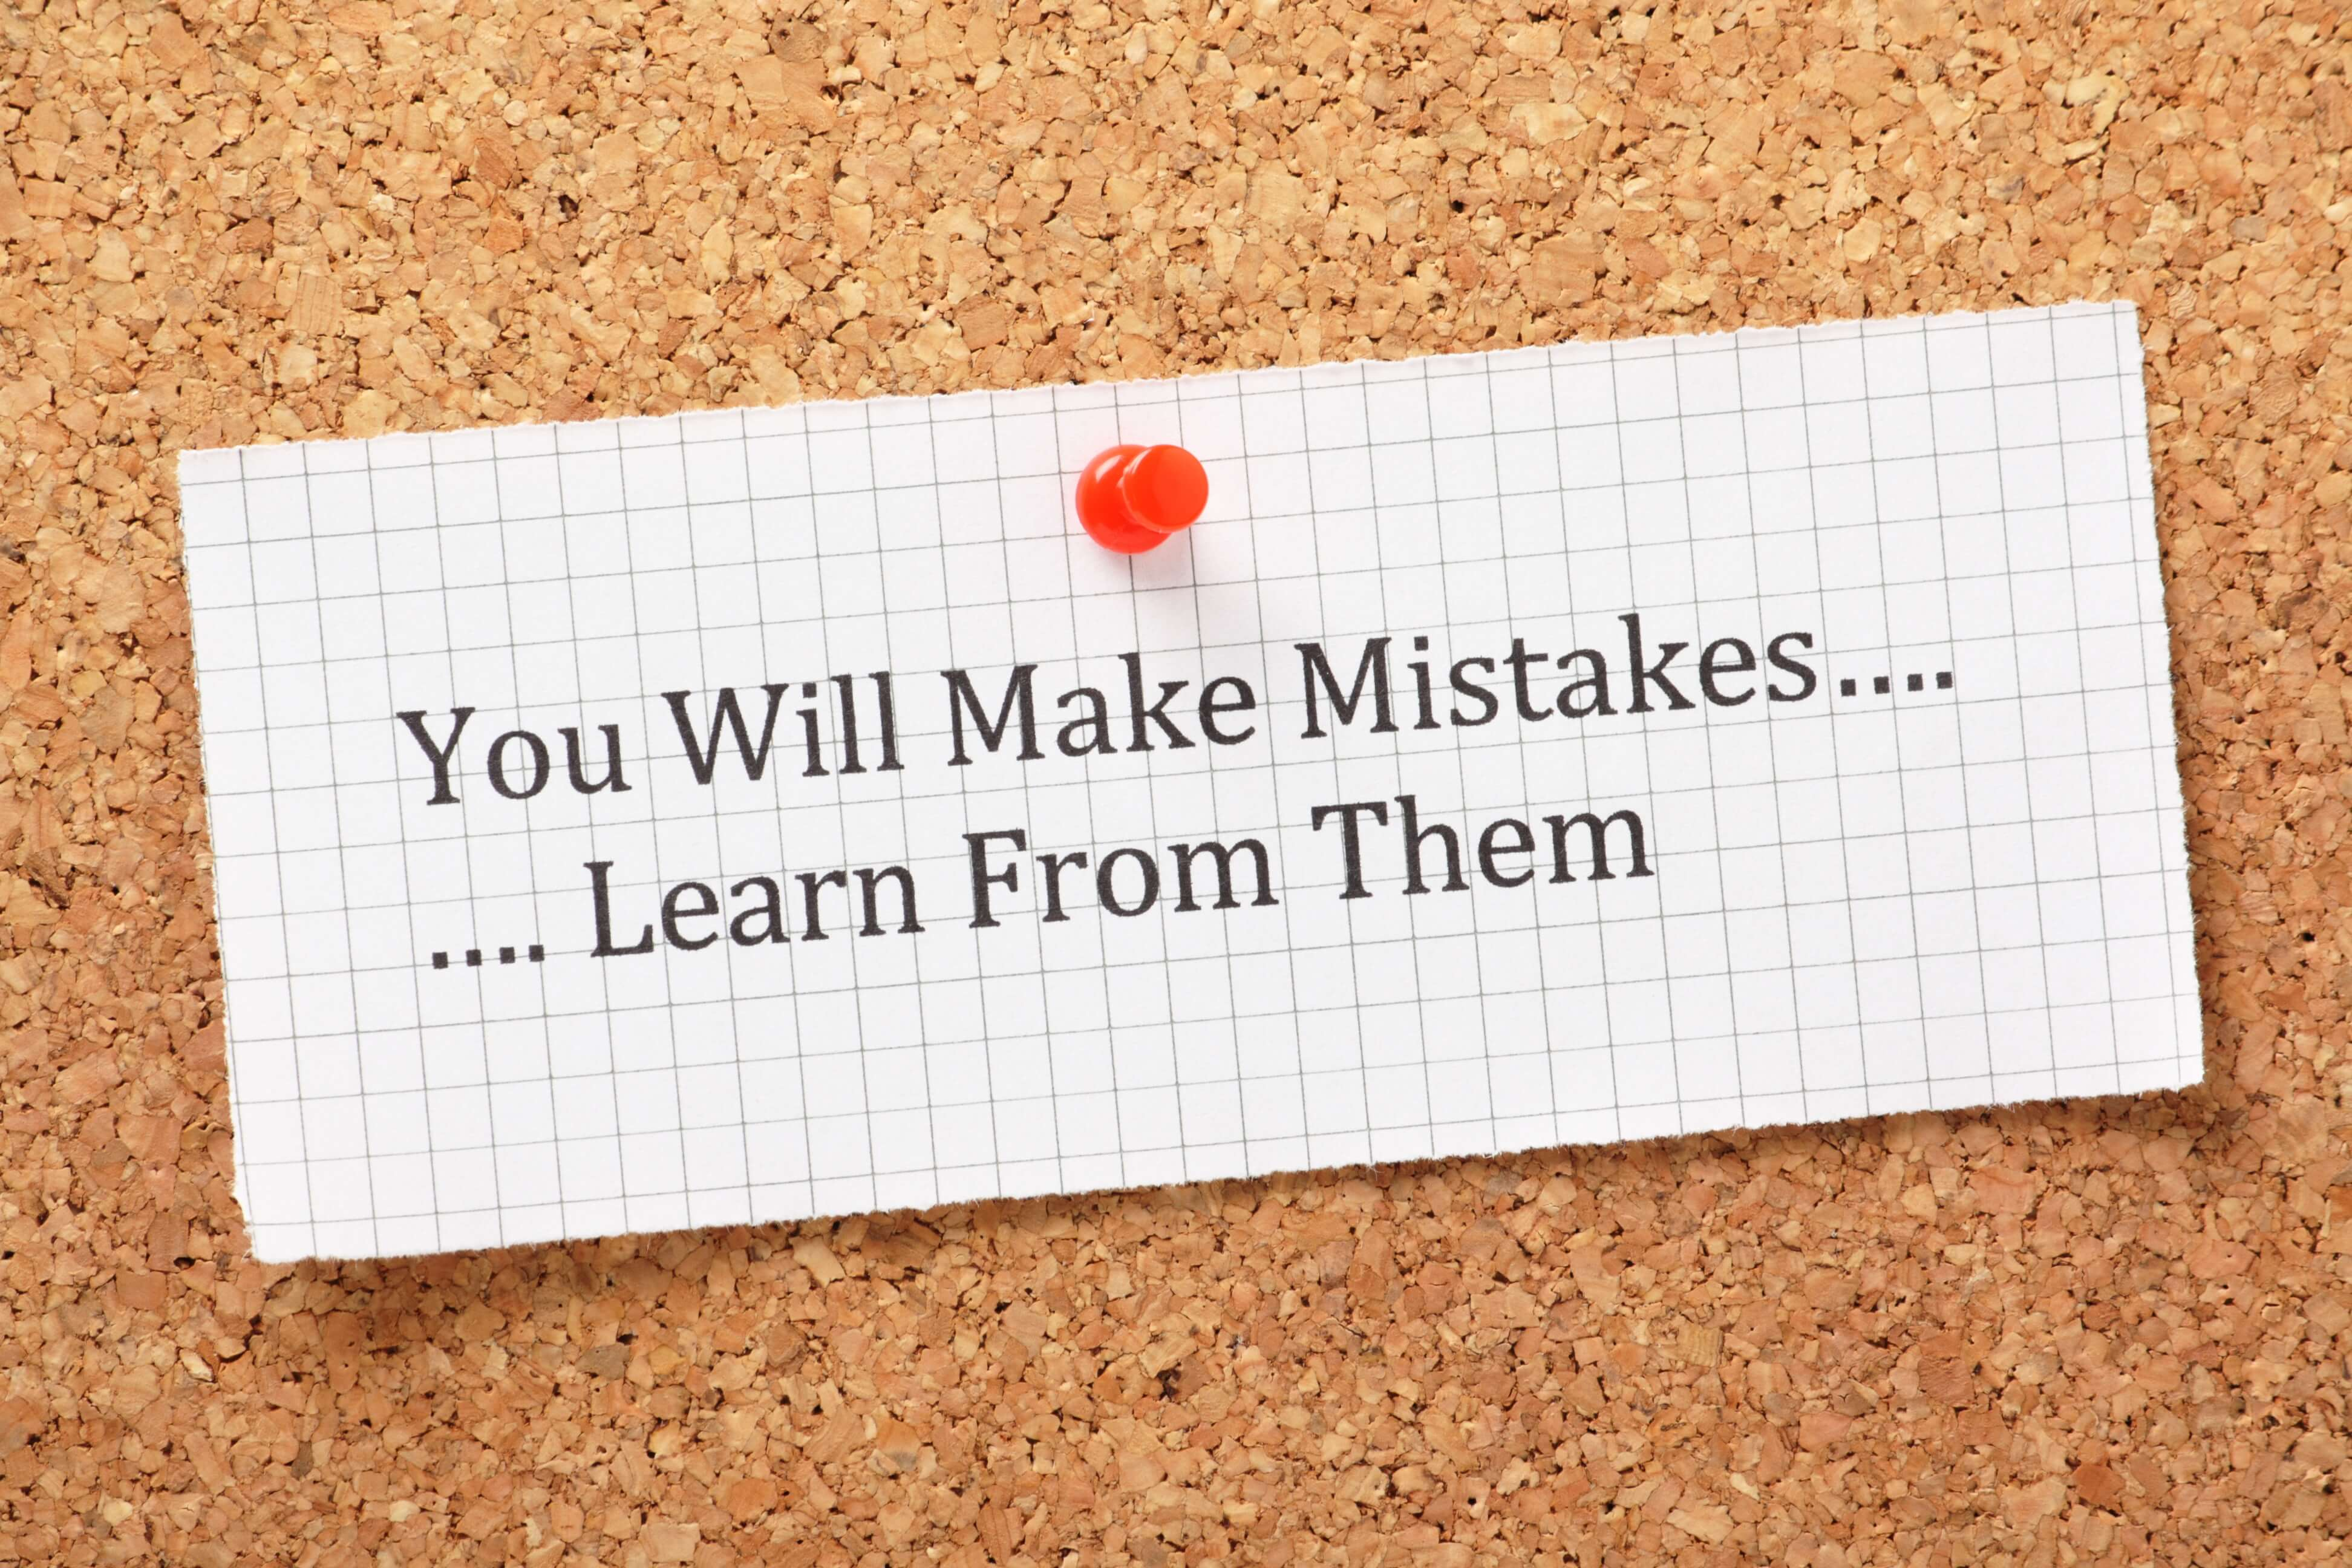 Mistakes Don't Have to Define You or Your Career